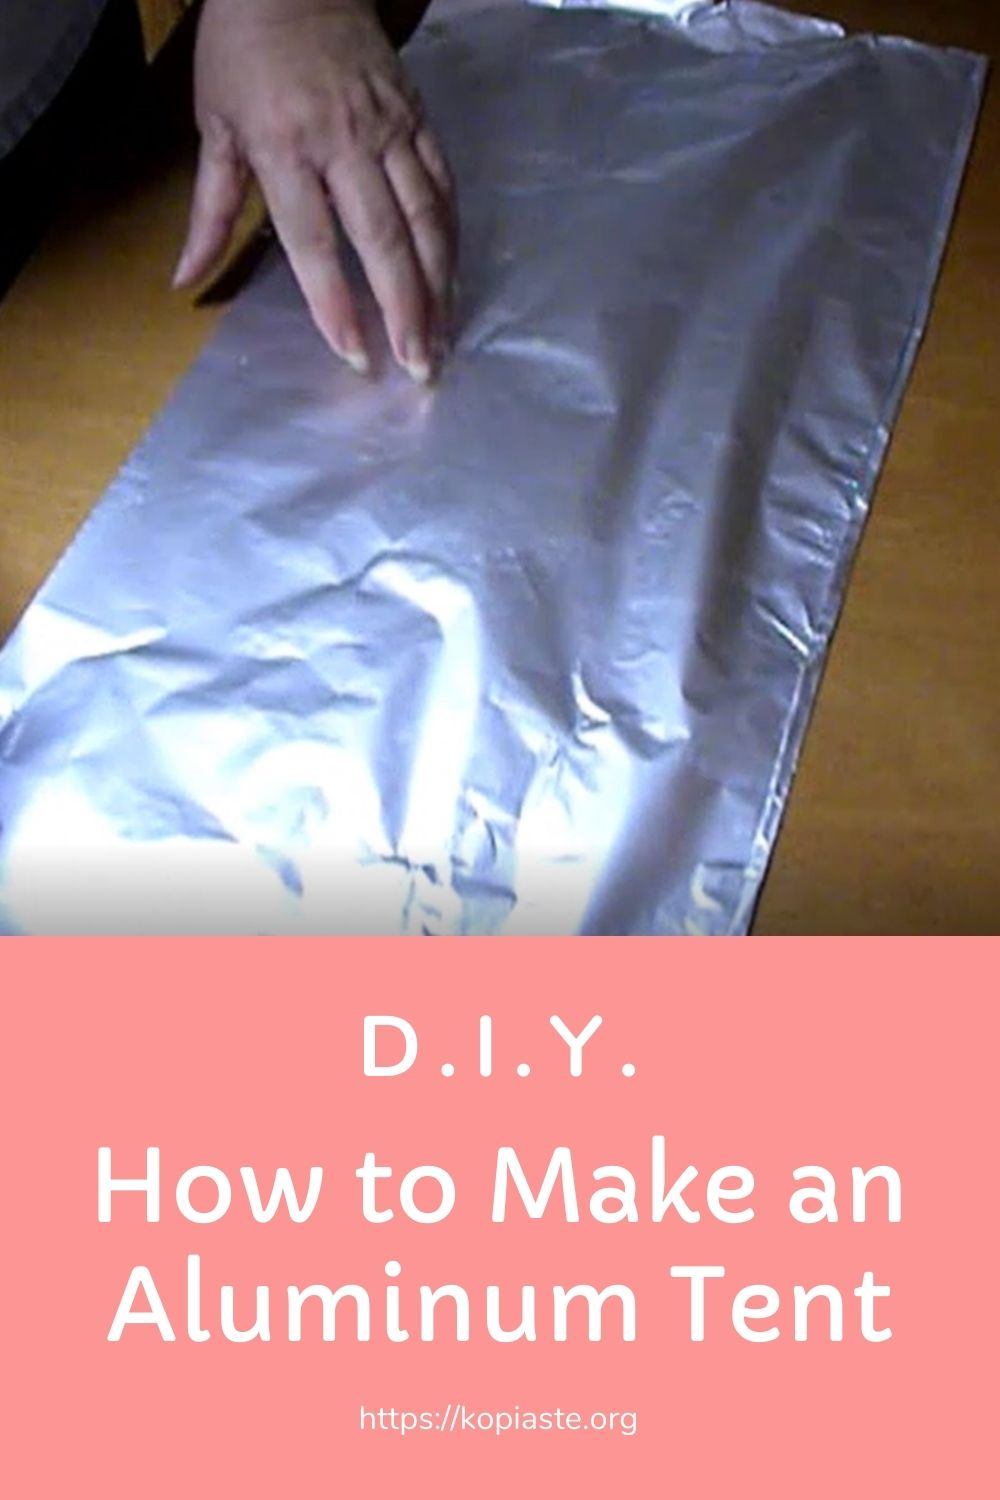 How to make an Aluminum Tent